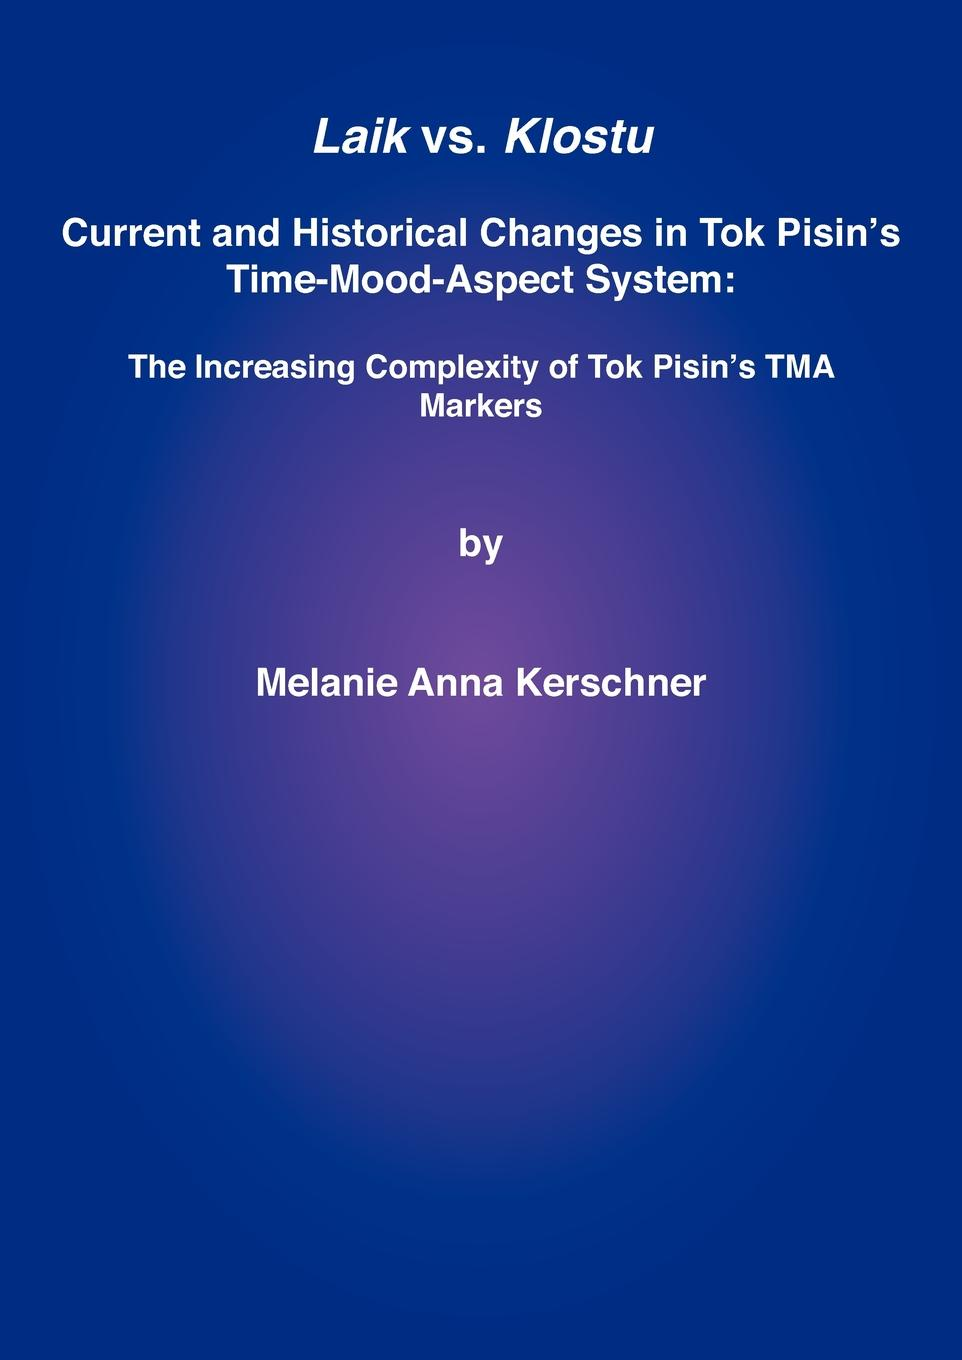 Melanie Anna Kerschner Laik vs. Klostu. Current and historical changes in Tok Pisin's time-mood-aspect system: the increasing complexity of Tok Pisin's TMA markers